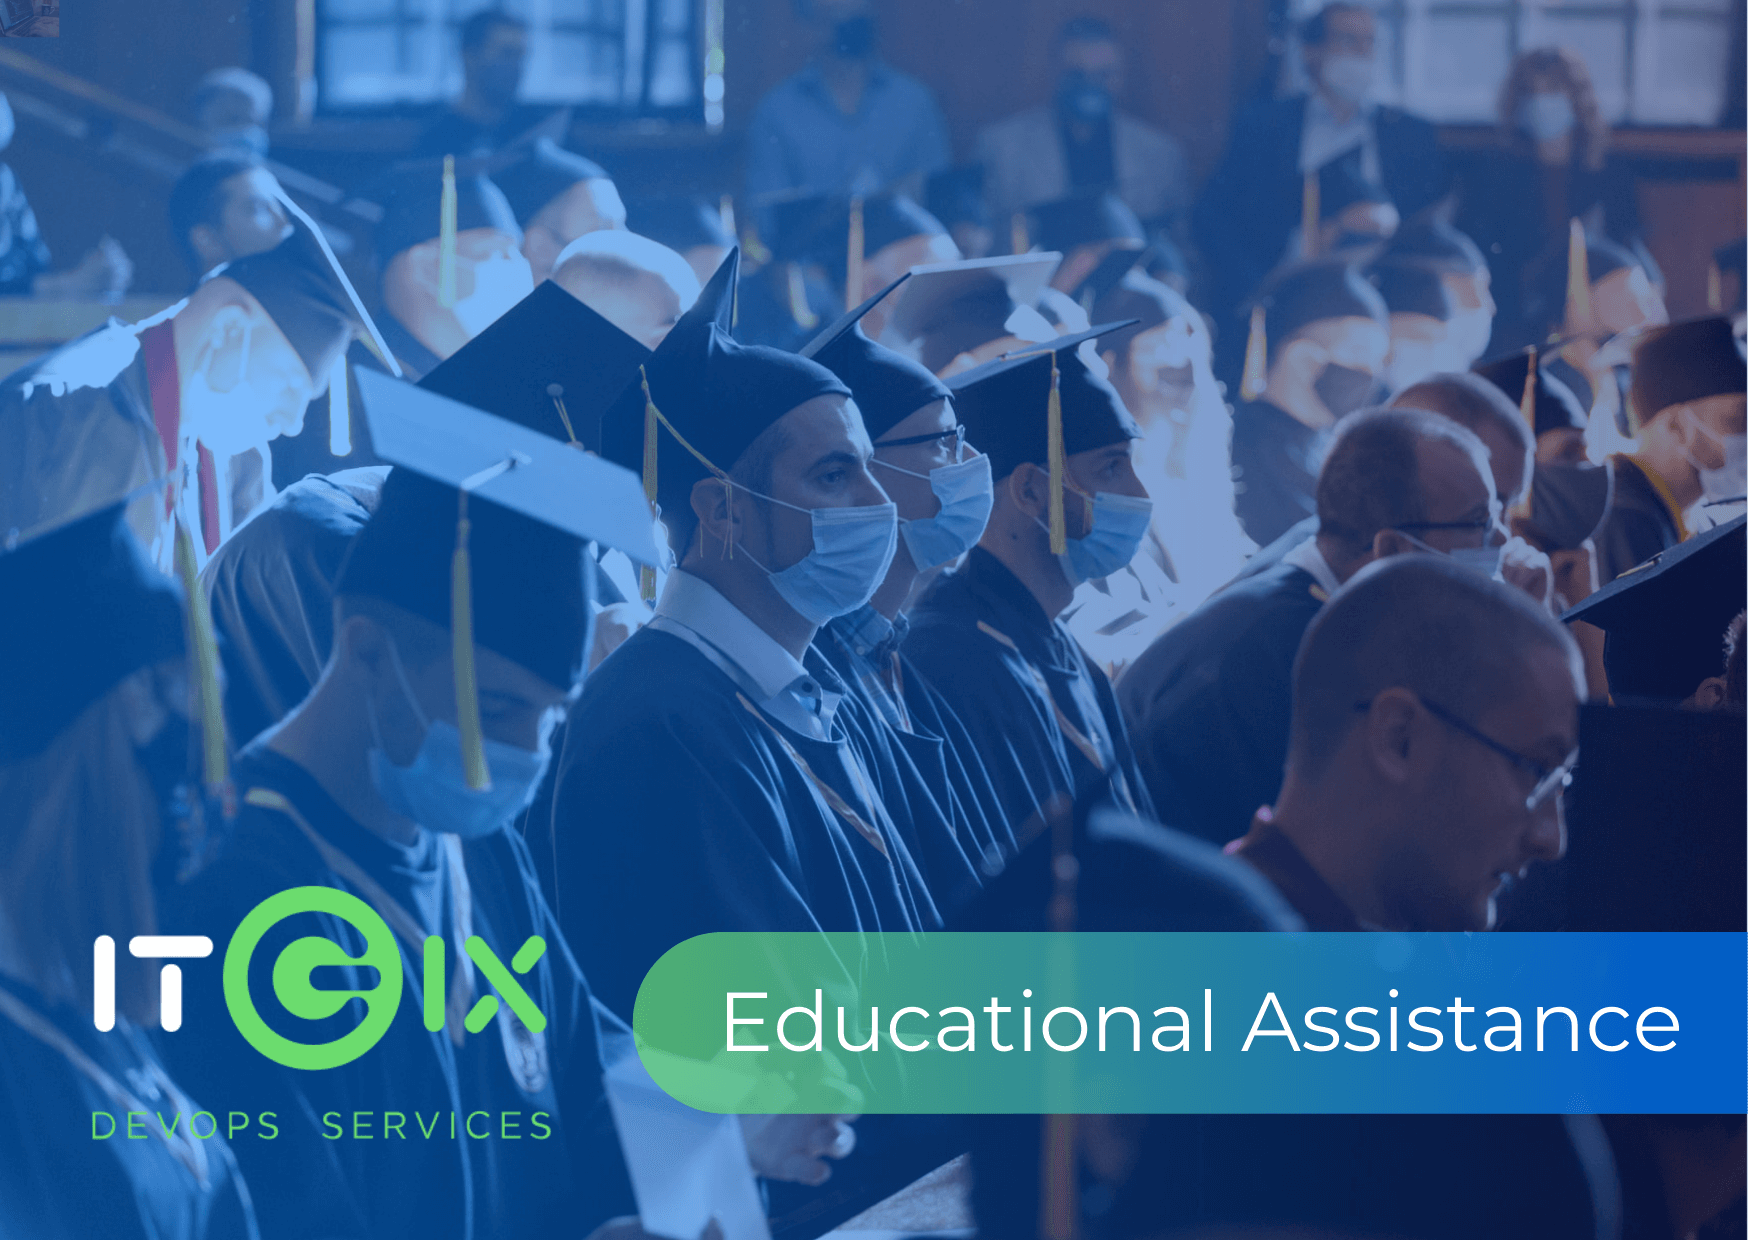 ITGix-corporate-educational-assistance